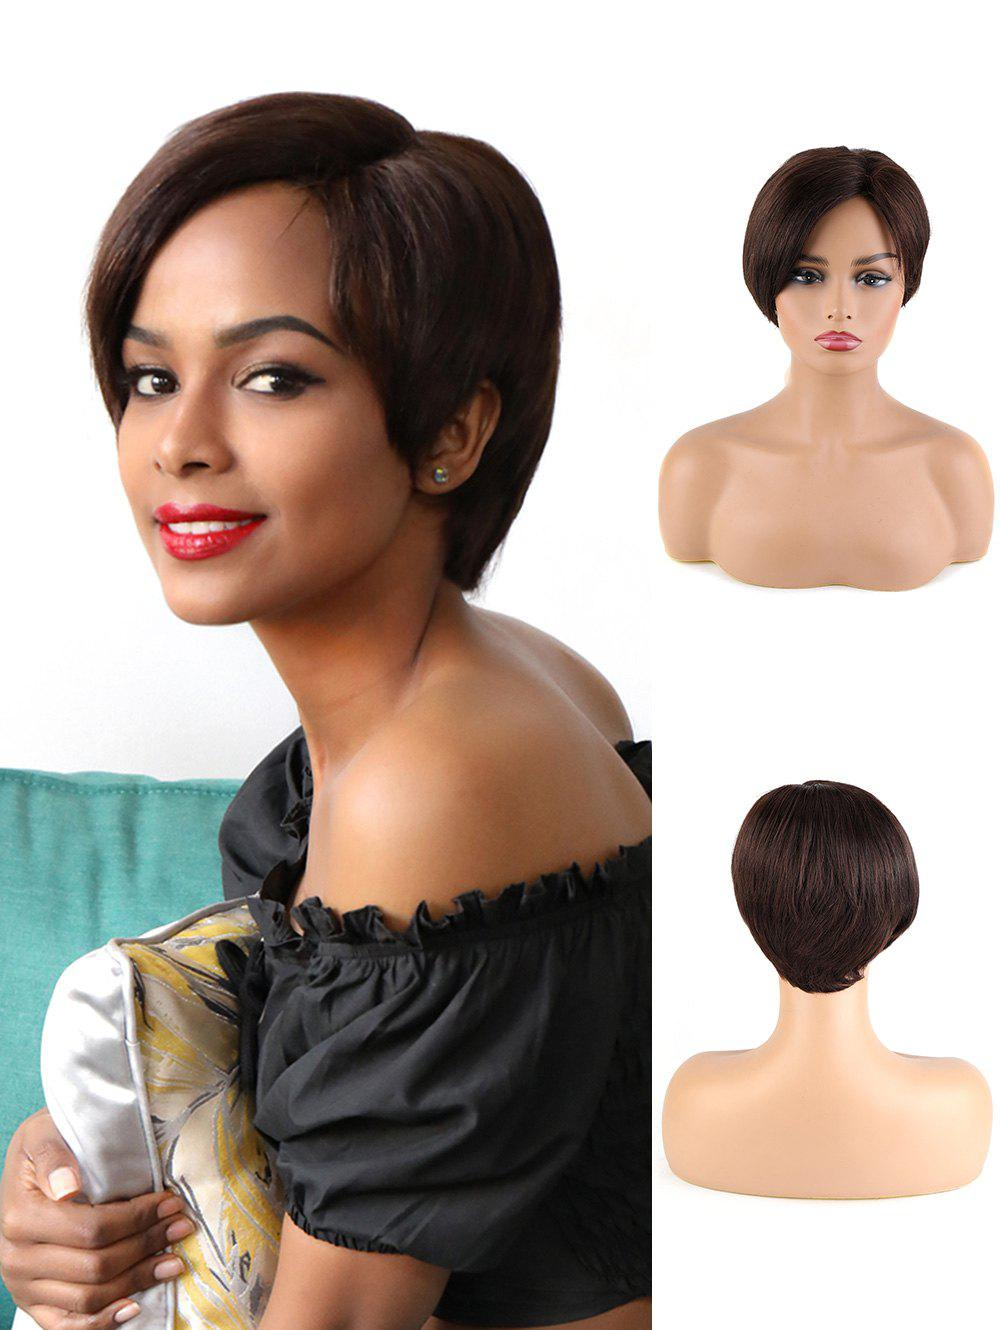 Fancy Pixie Cut Human Hair Straight Short Wig